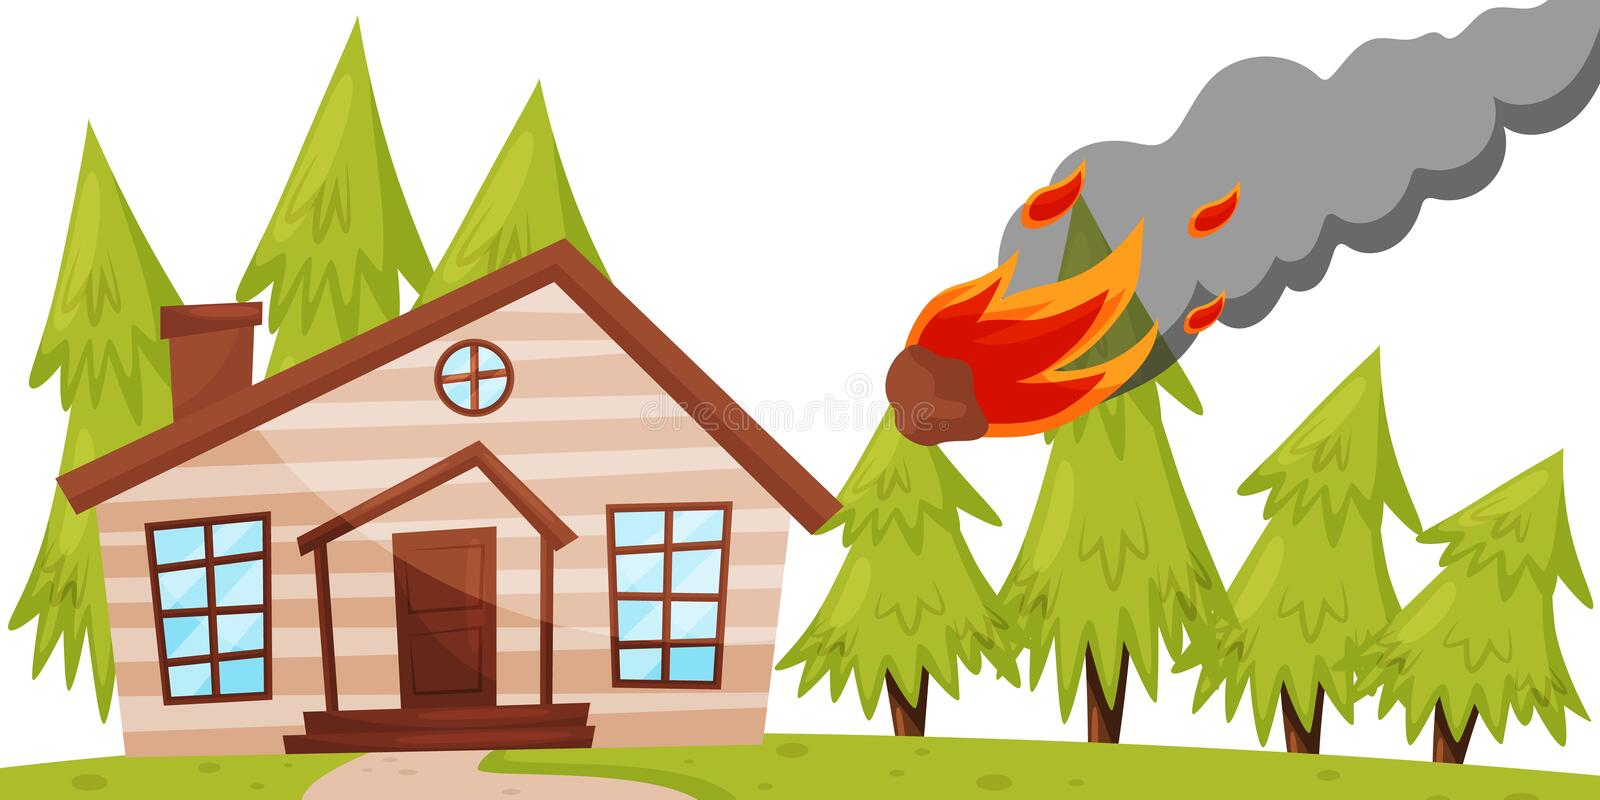 Flat vector design of flaming meteorite falling on the house, green fir trees on background. Natural disaster royalty free illustration